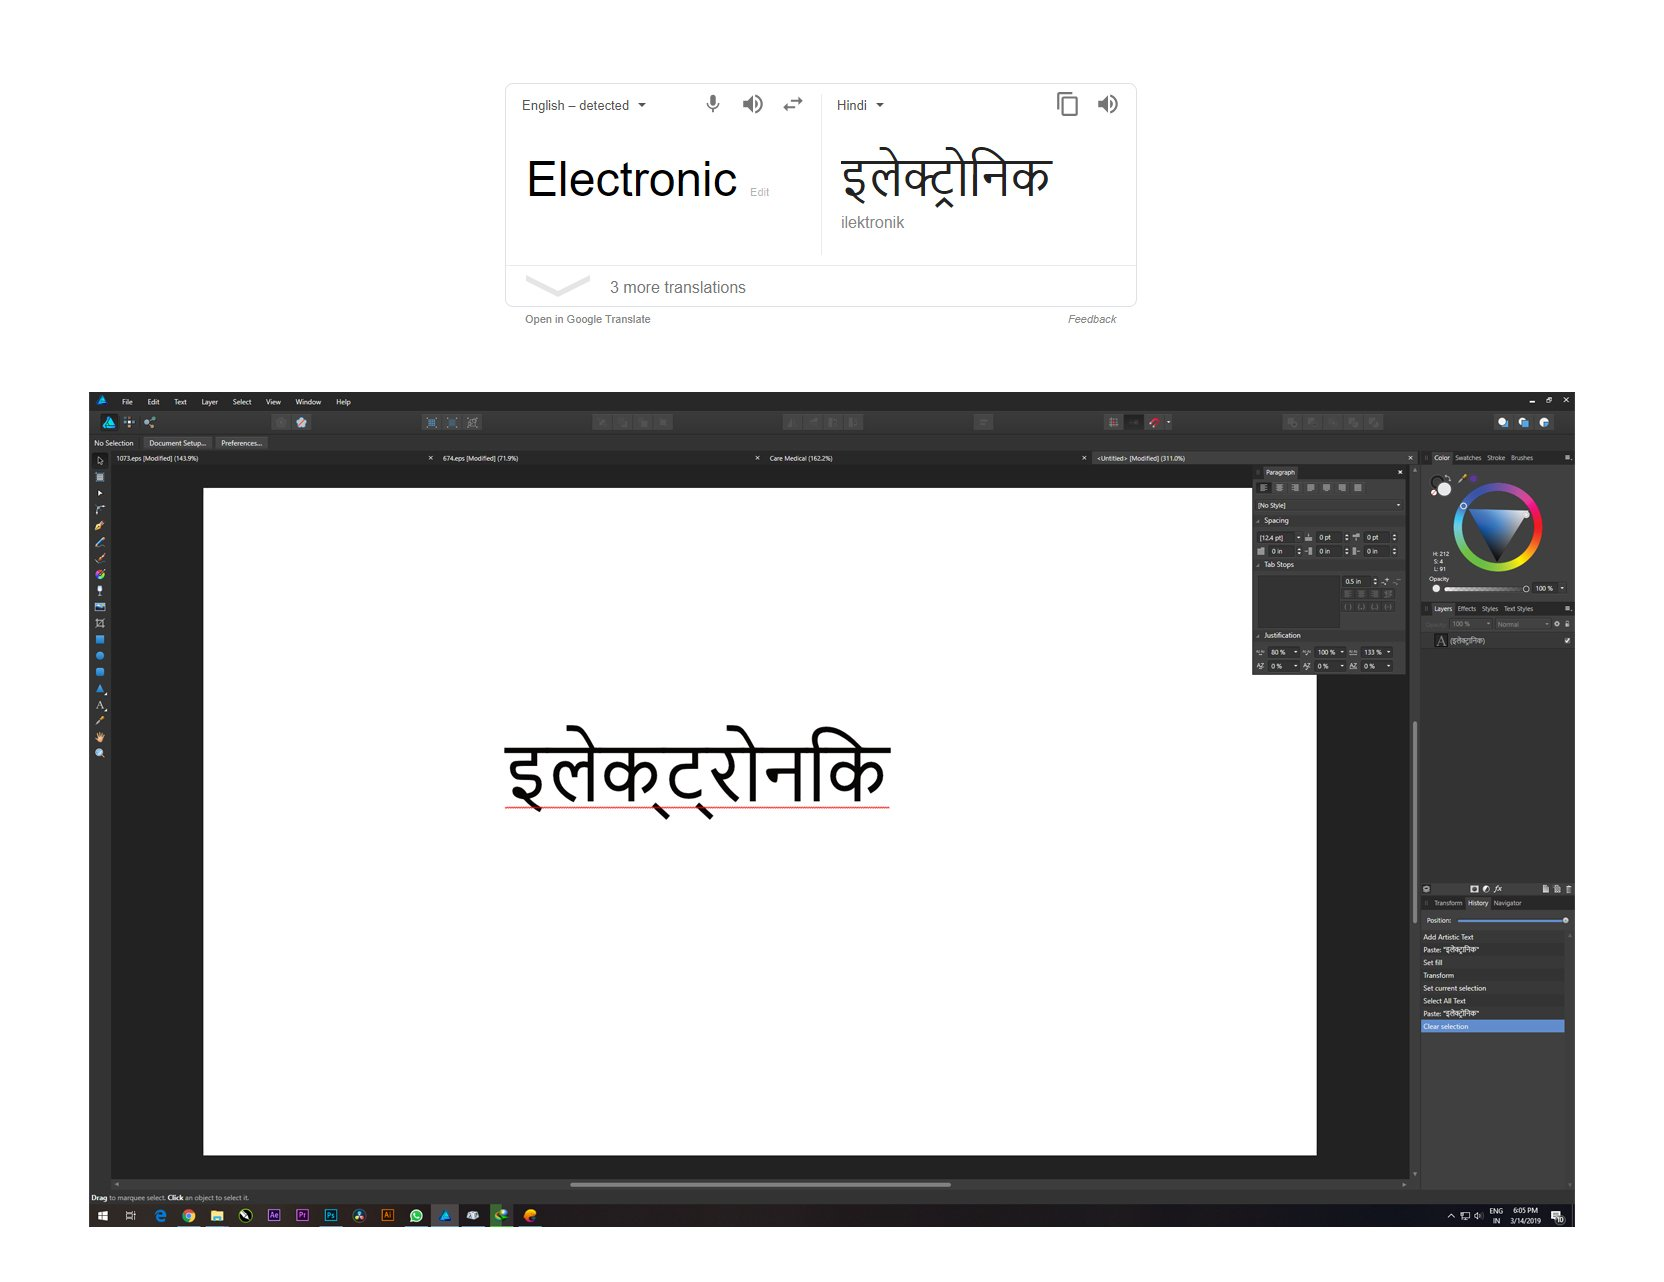 Google Hindi Typing Problem - Affinity on Desktop Questions (Mac and